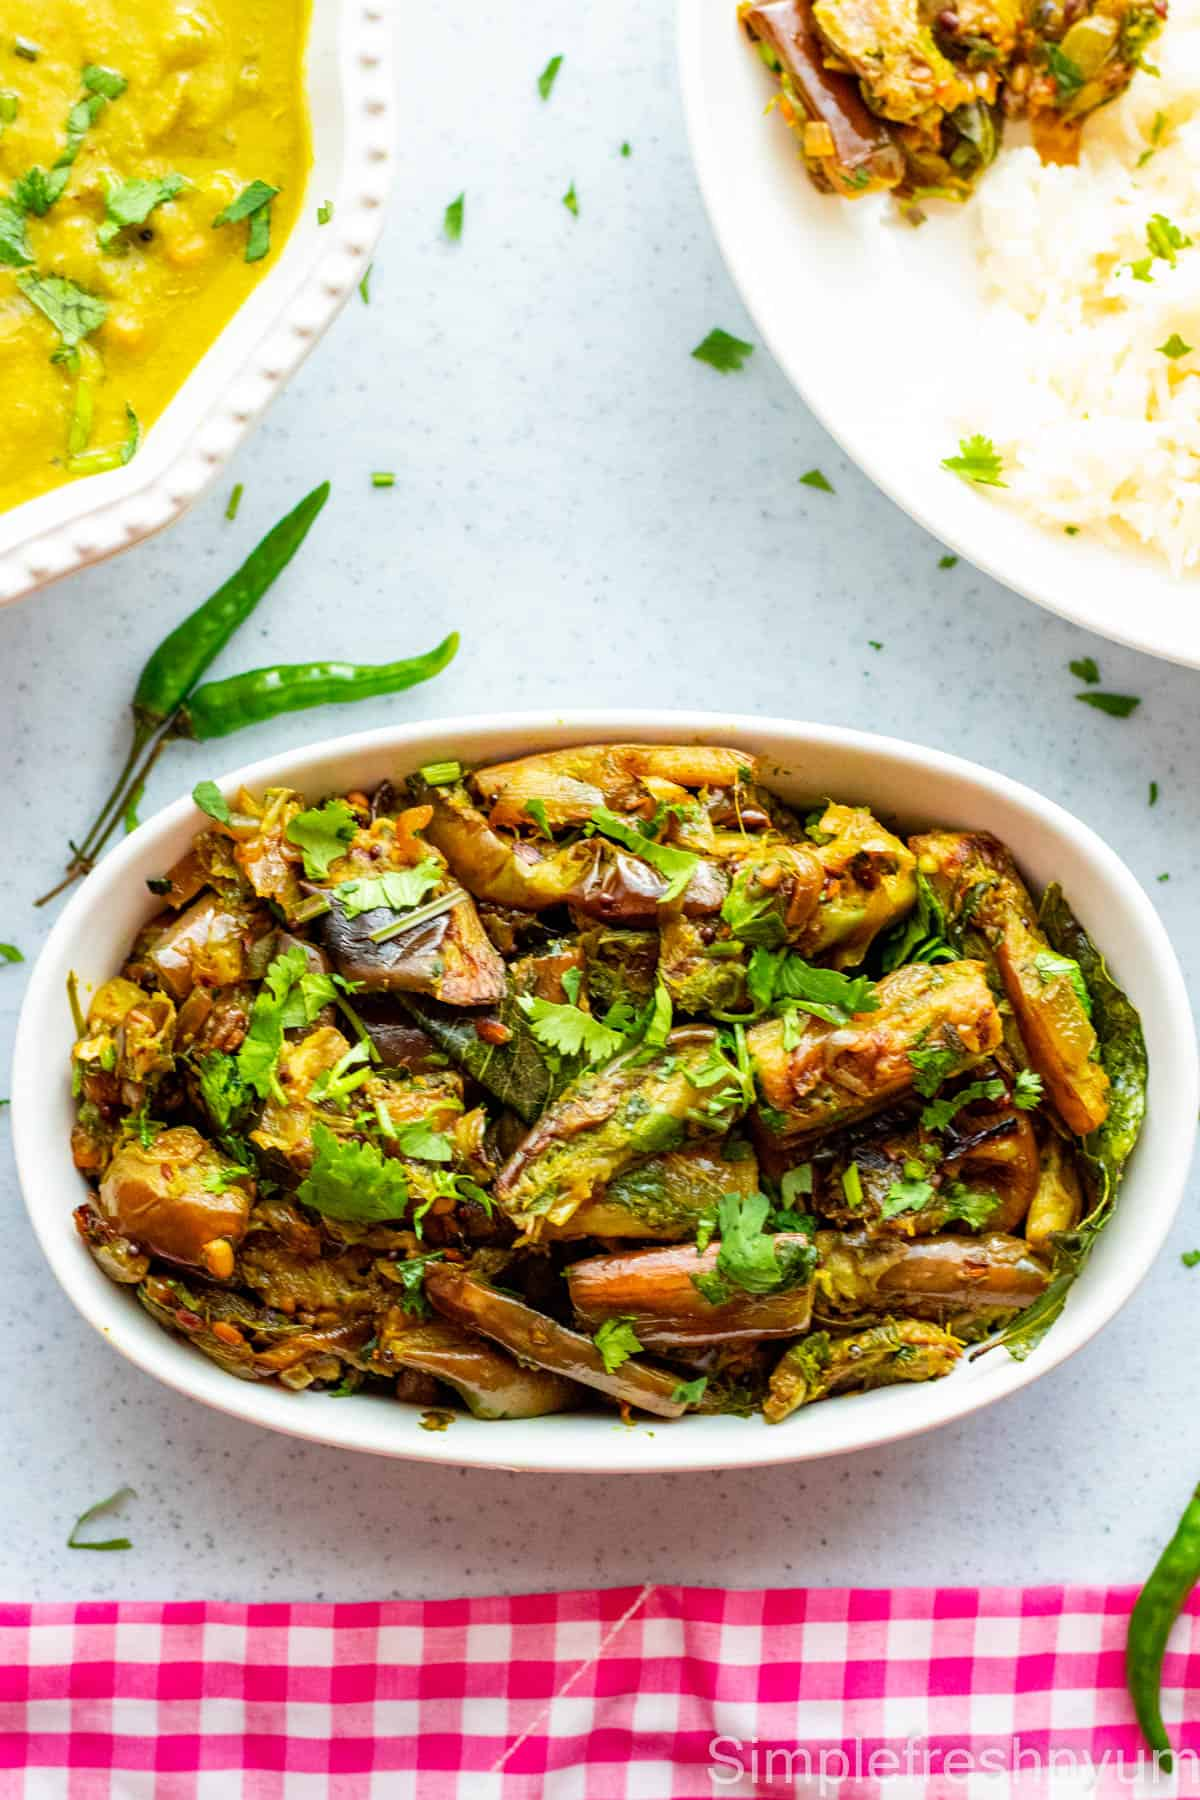 Brinjal fry served in a white oval serving dish with a dish of dal on the side and a plate served with rice, brinjal fry and dal. Cilantro is garnished on top.